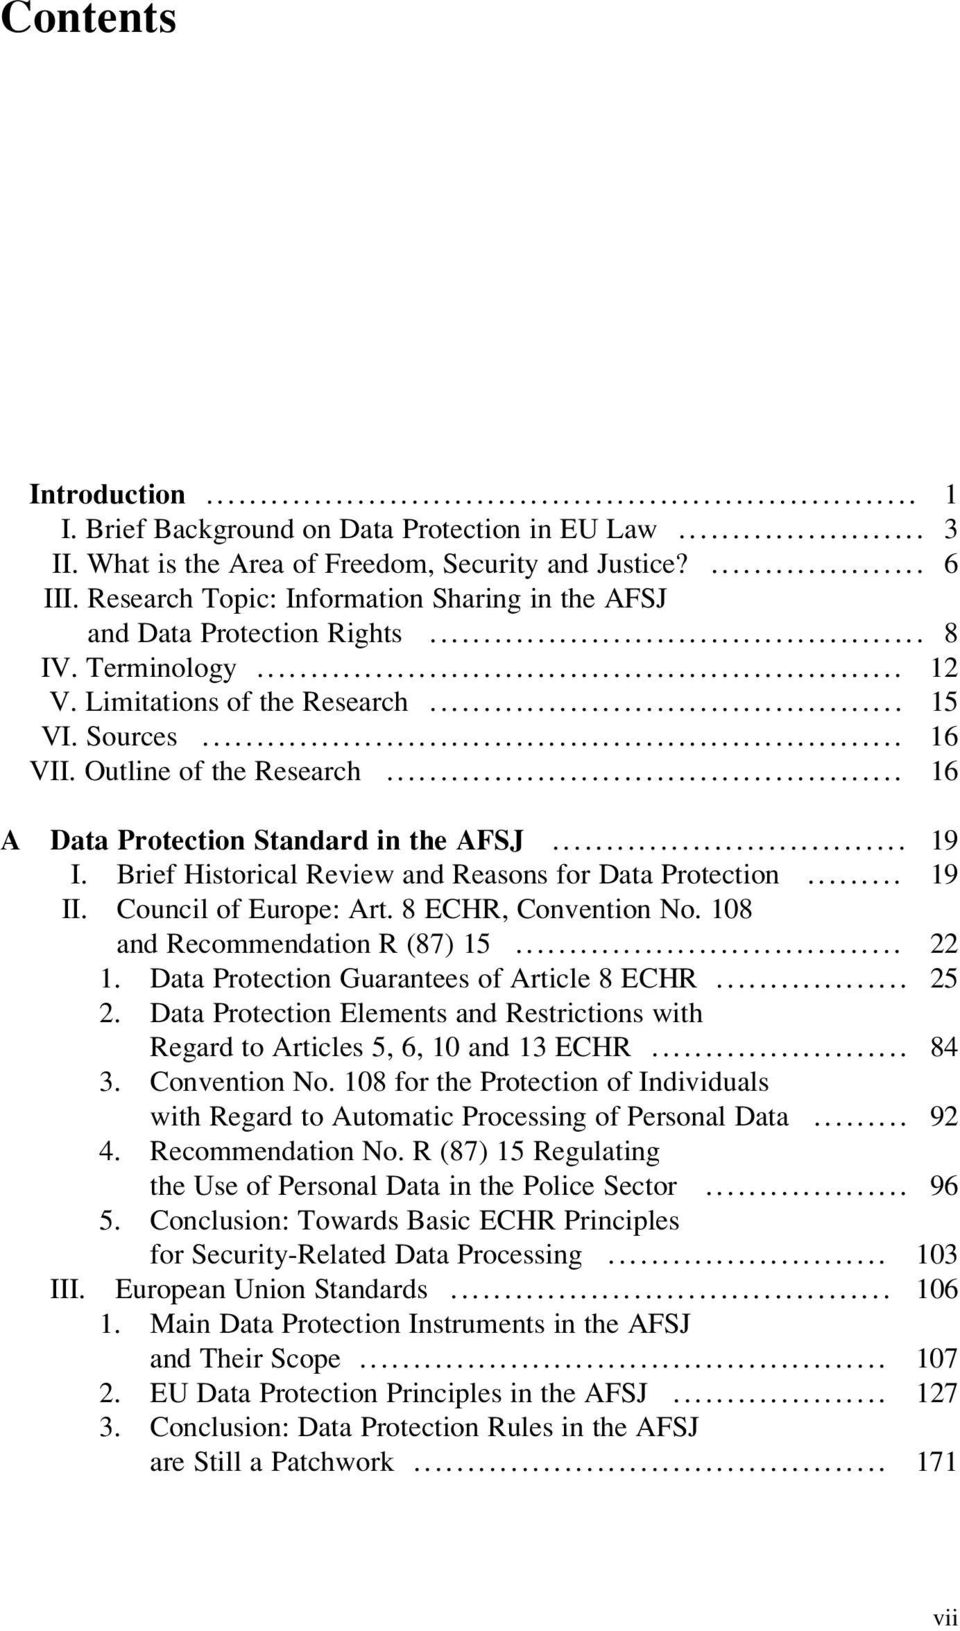 .. 16 A Data Protection Standard in the AFSJ... 19 I. Brief Historical Review and Reasons for Data Protection... 19 II. Council of Europe: Art. 8 ECHR, Convention No. 108 and Recommendation R (87) 15.